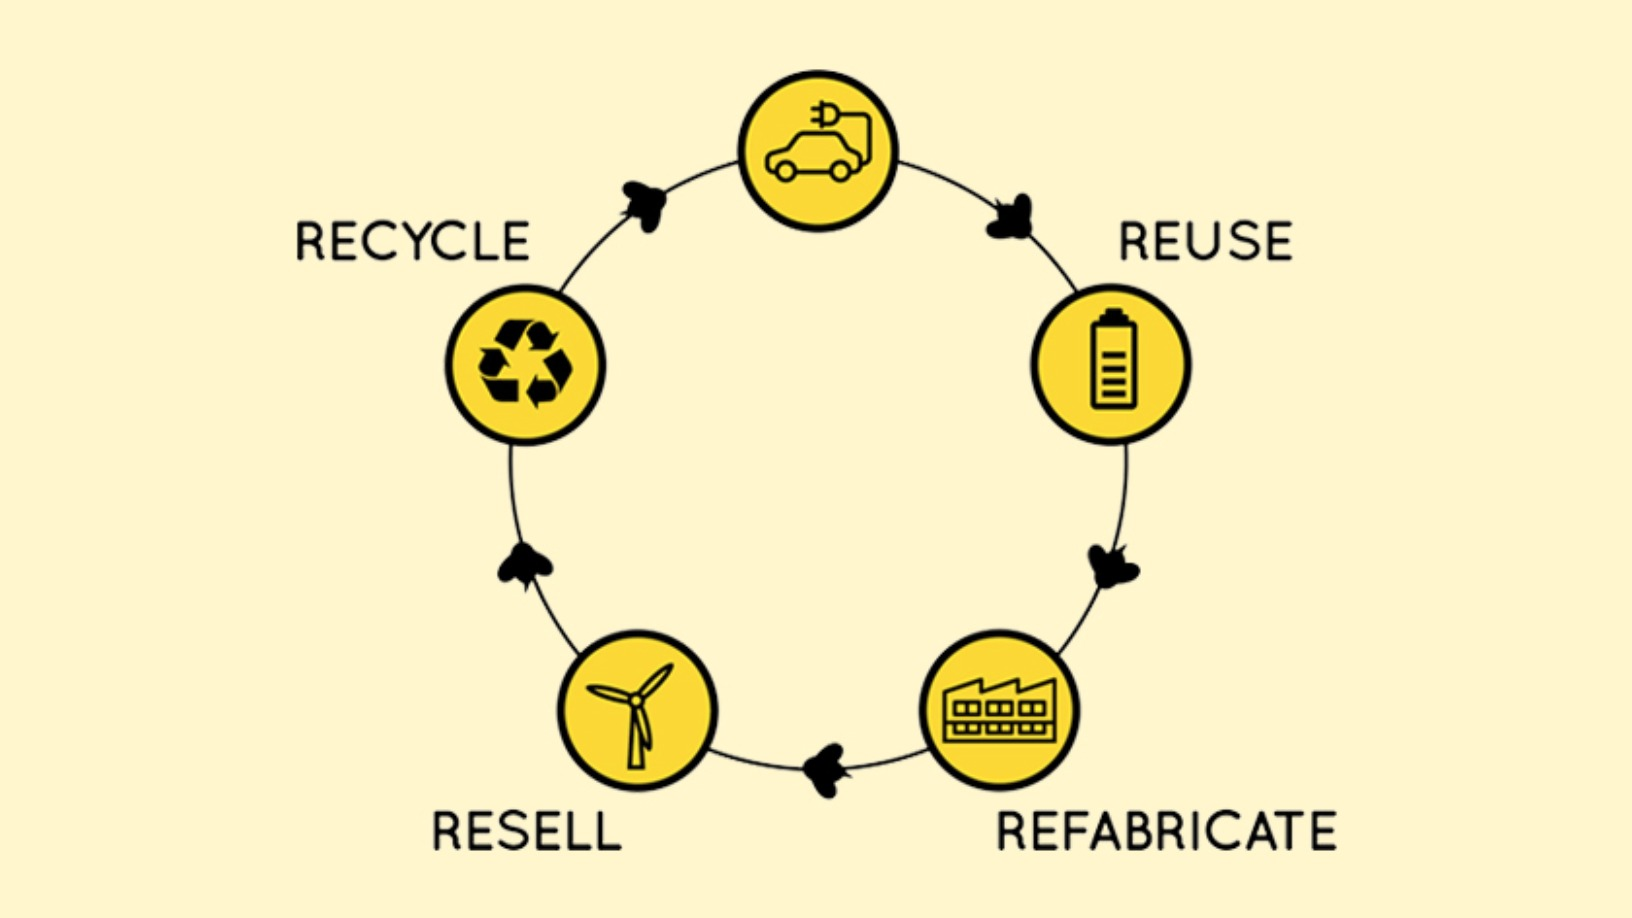 BeePlanet Factory: Recycling EV batteries as a sustainable, profitable business